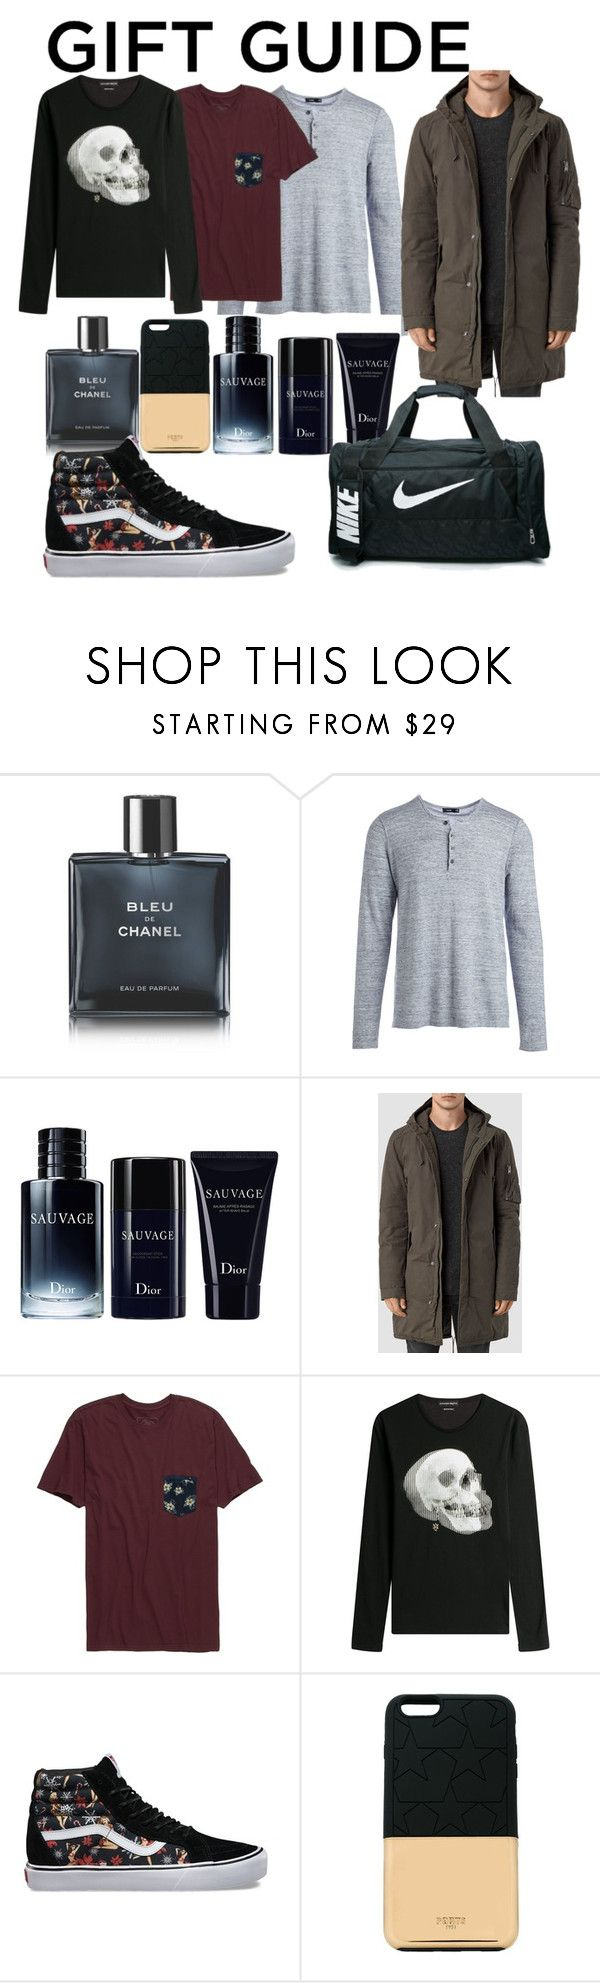 """Men's Gift Guide"" by raquellea ❤ liked on Polyvore featuring Chanel, Vince, Christian Dior, AllSaints, Rip Curl, Alexander McQueen, Vans, Ports 1961, NIKE and men's fashion"